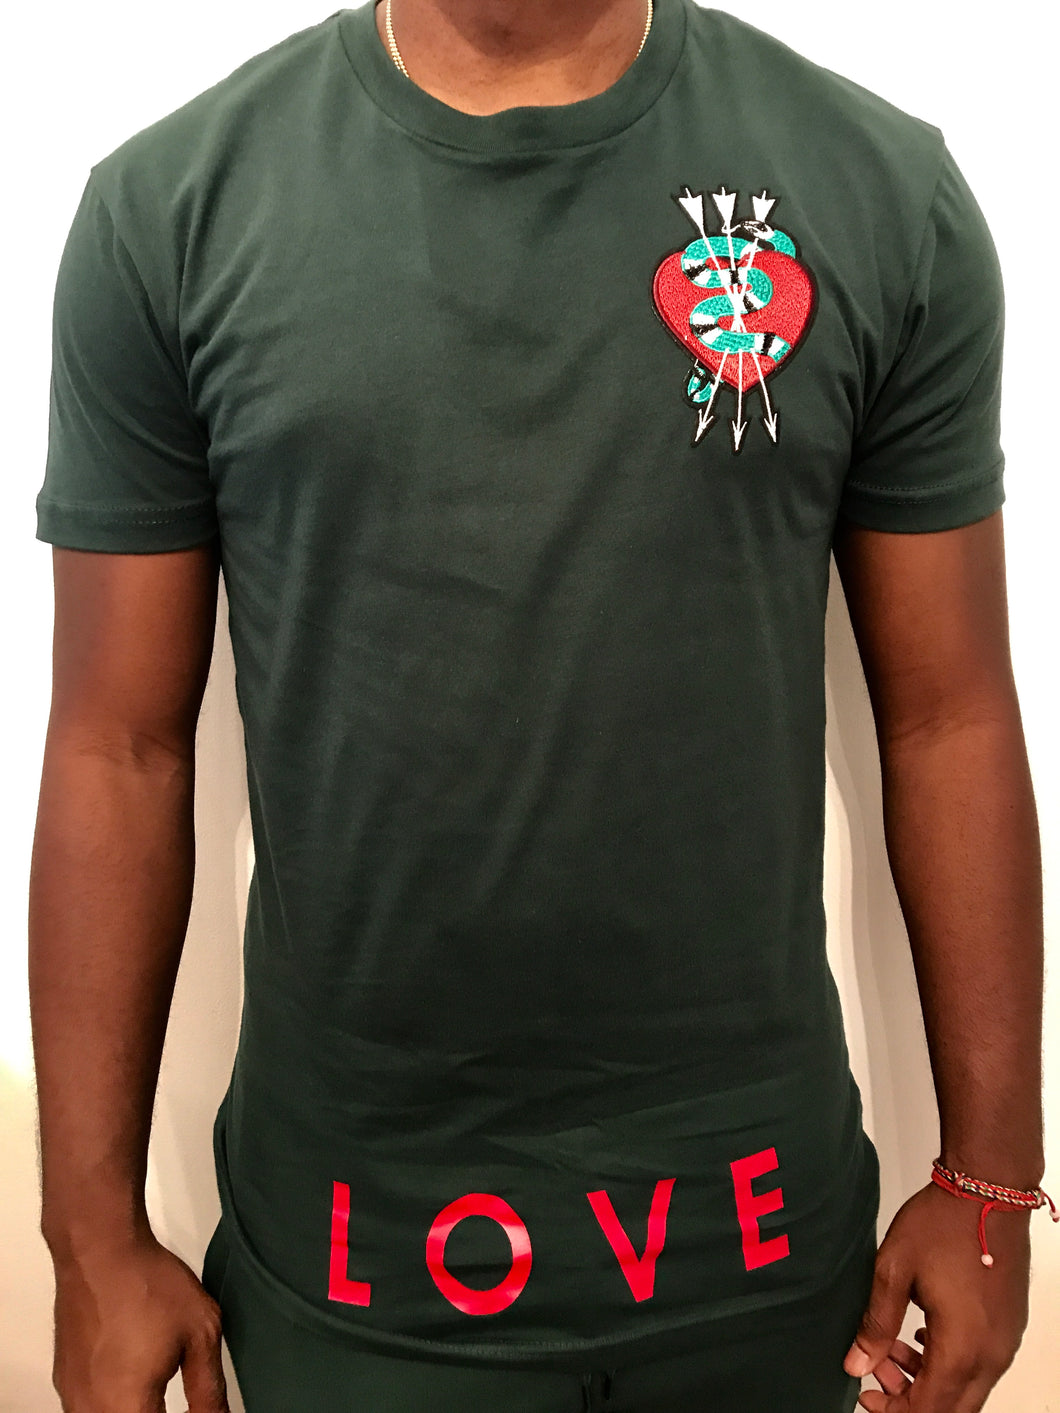 Love/Hate Tshirt